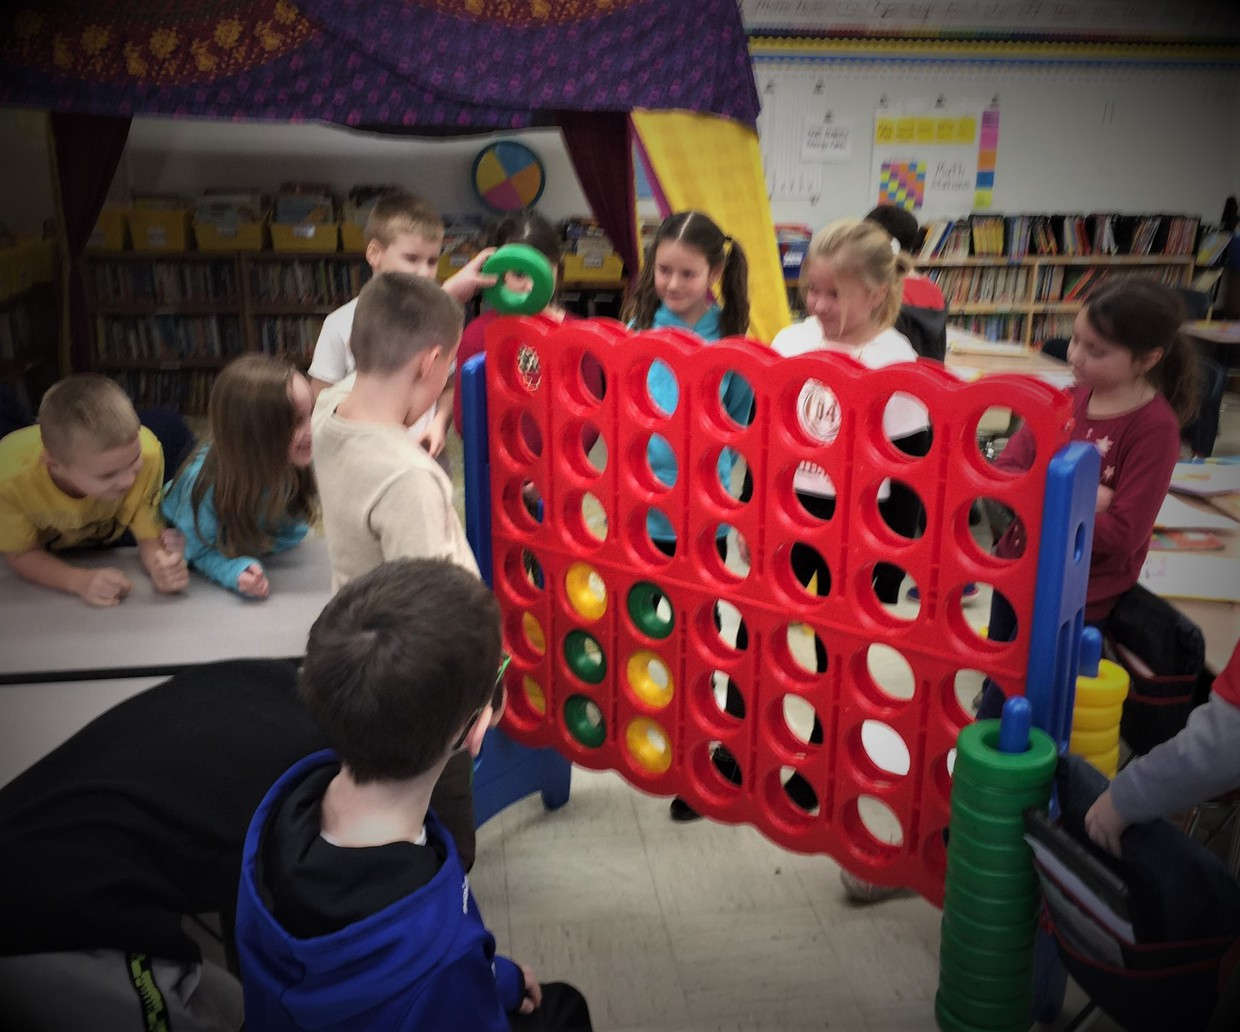 Students stand and play a life-size CONNECT FOUR game - provided as an incentive by Munson Elementary PTO.